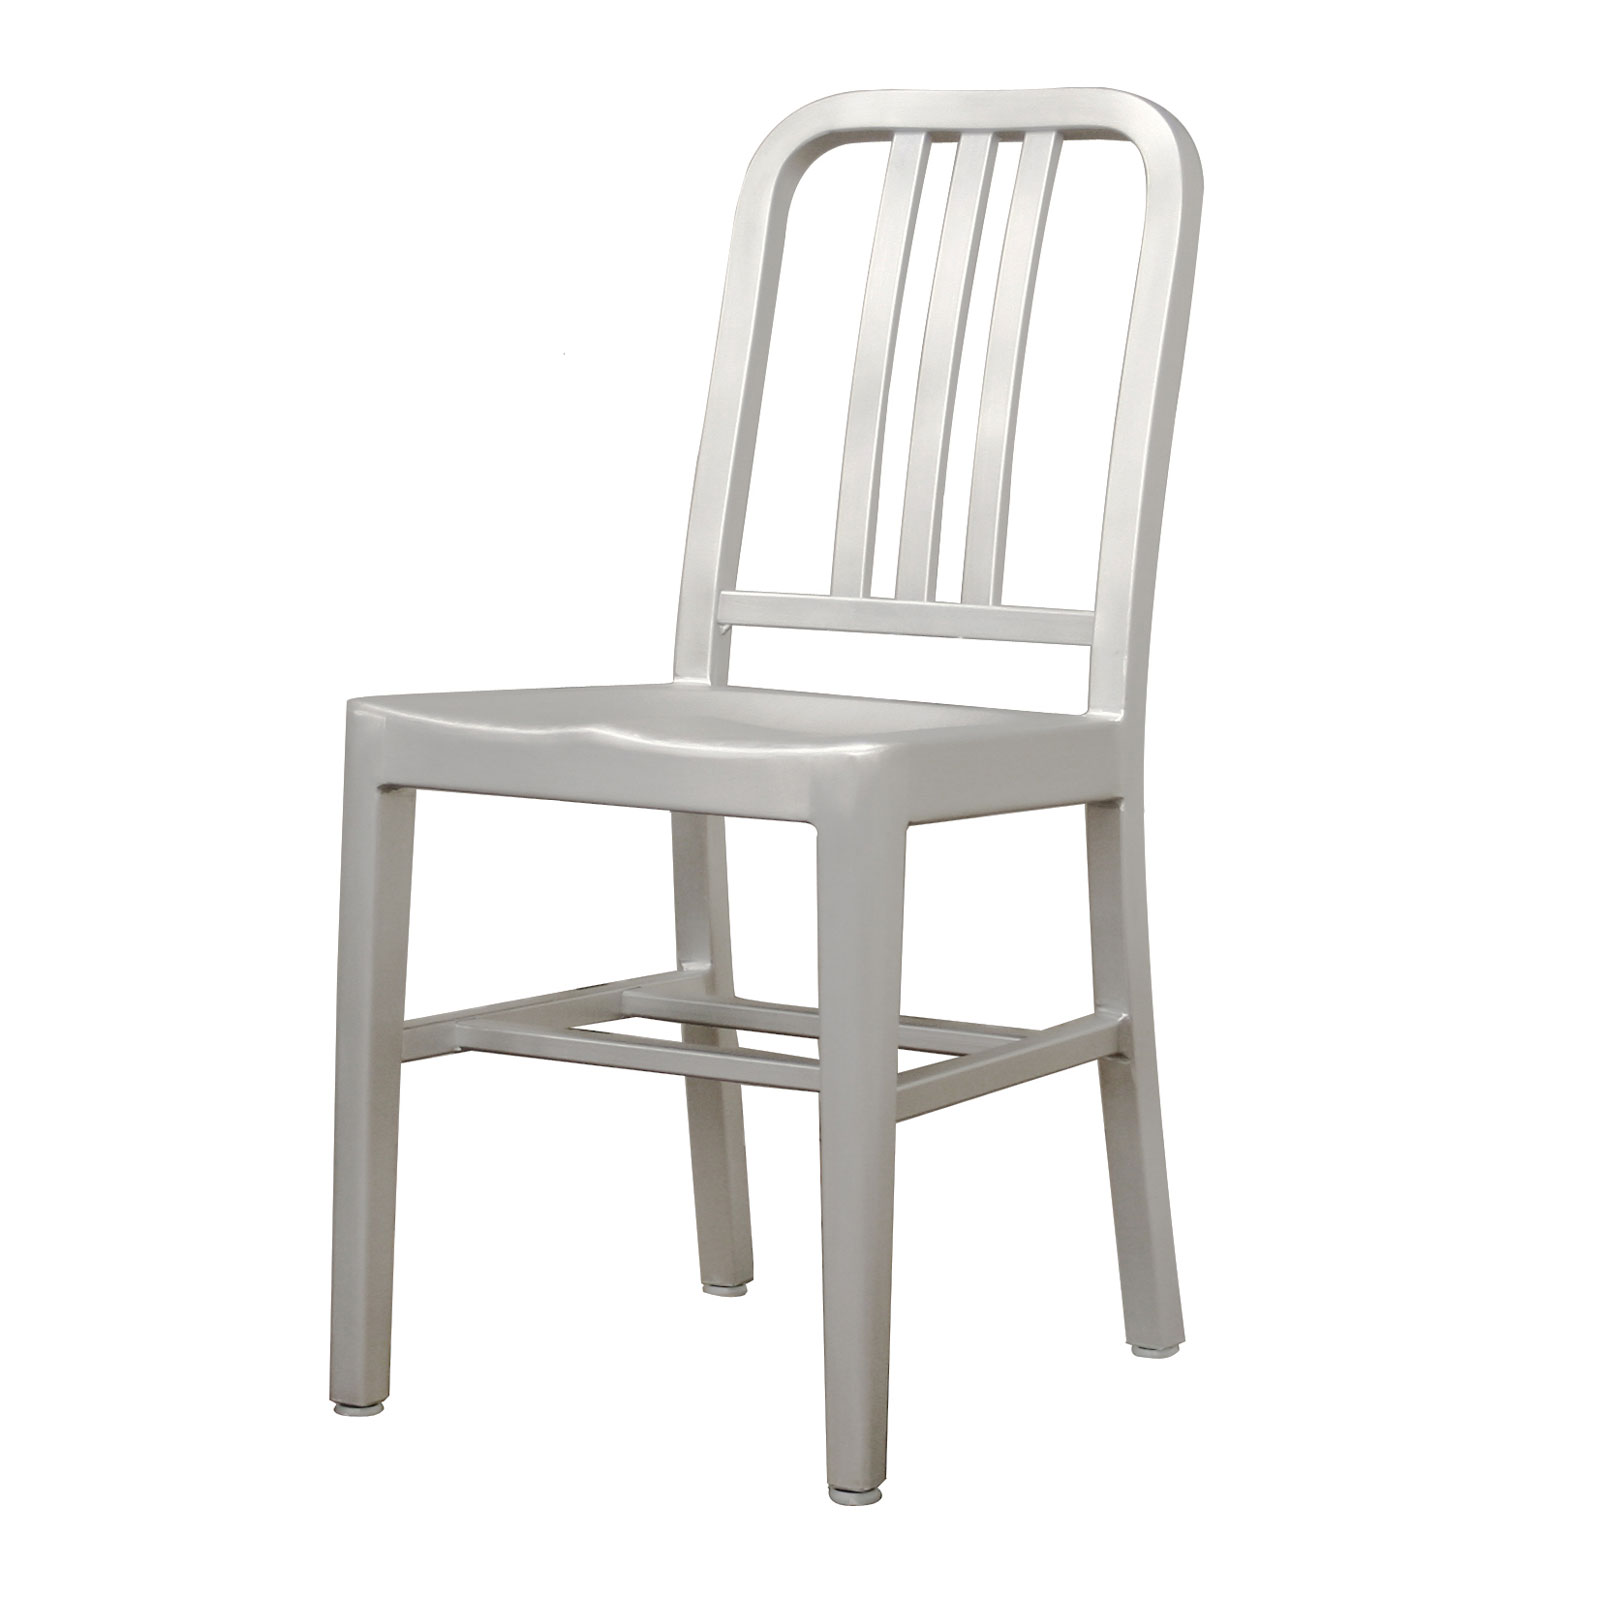 Aluminum Chairs Modern Cafe Chair In Brushed Aluminum Set Of 2 By